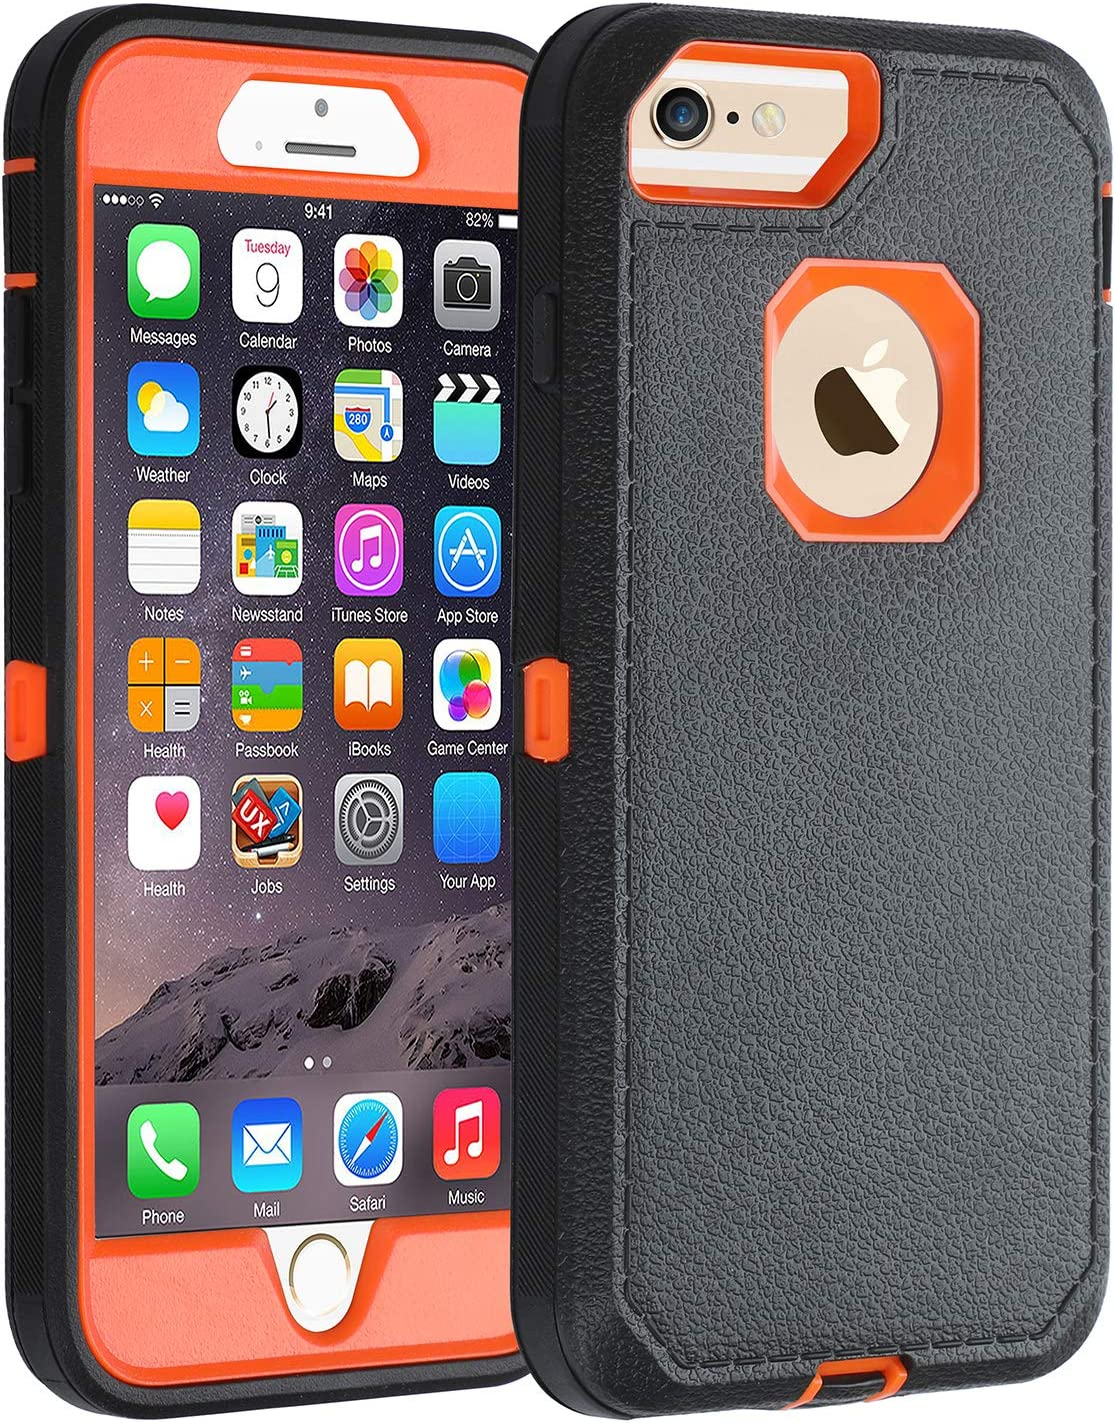 Co-Goldguard Case for iPhone 6s Plus/6 Plus,Heavy Duty [No Screen Protector] 3 in 1 Cover with Screen Bumper Shell for iPhone 6+/6s+ 5.5 inch,Black/Orange